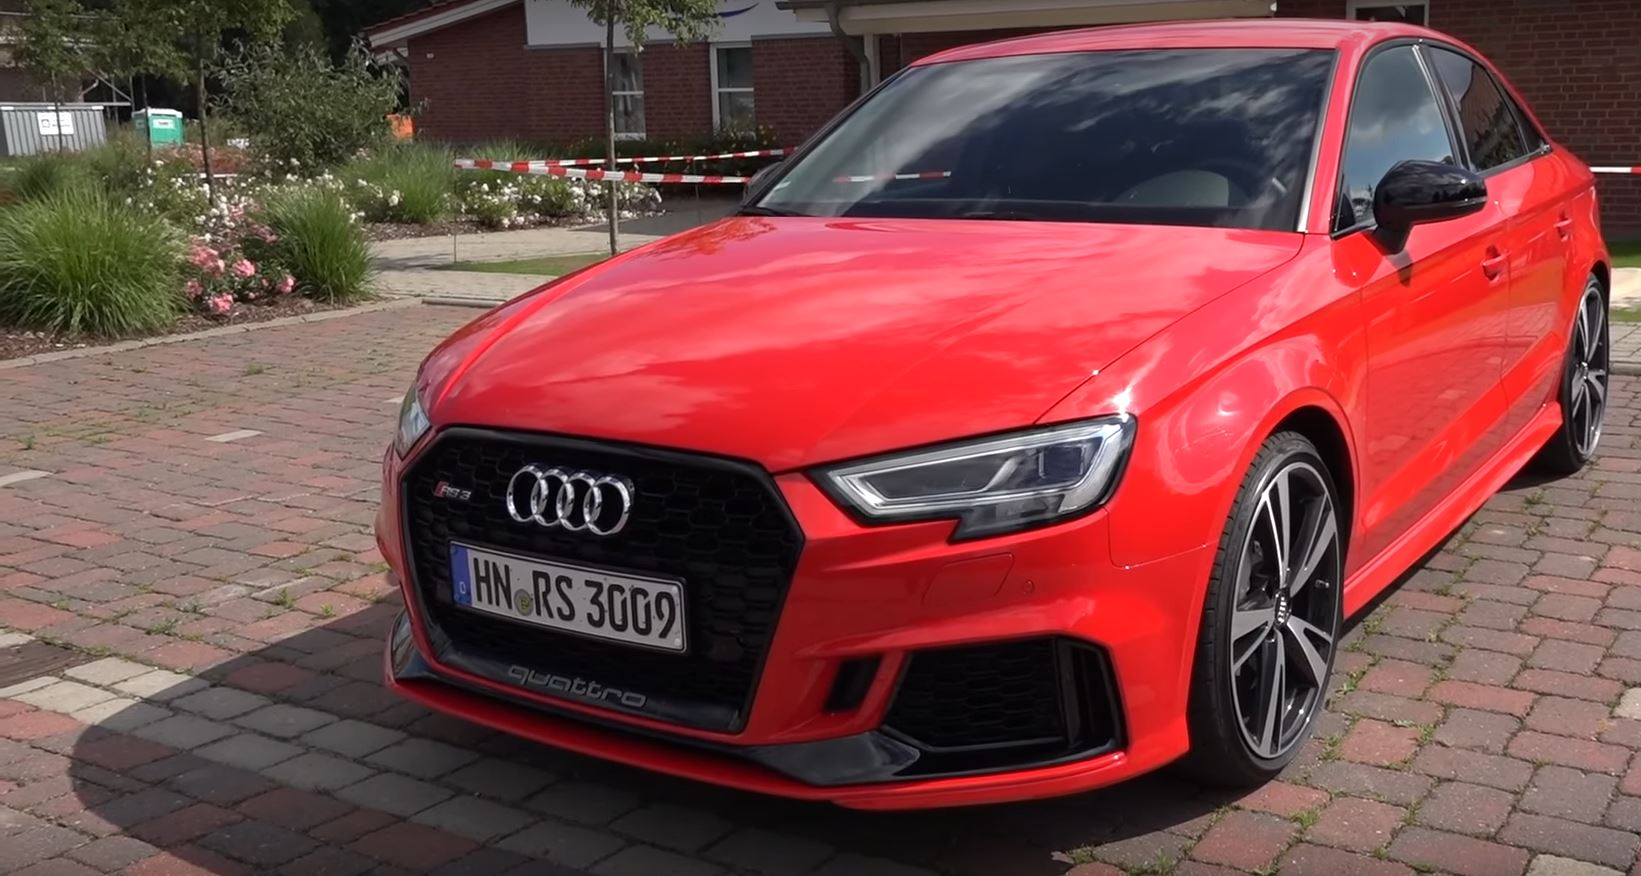 2018 audi rs3 sedan sound check and acceleration test - autoevolution